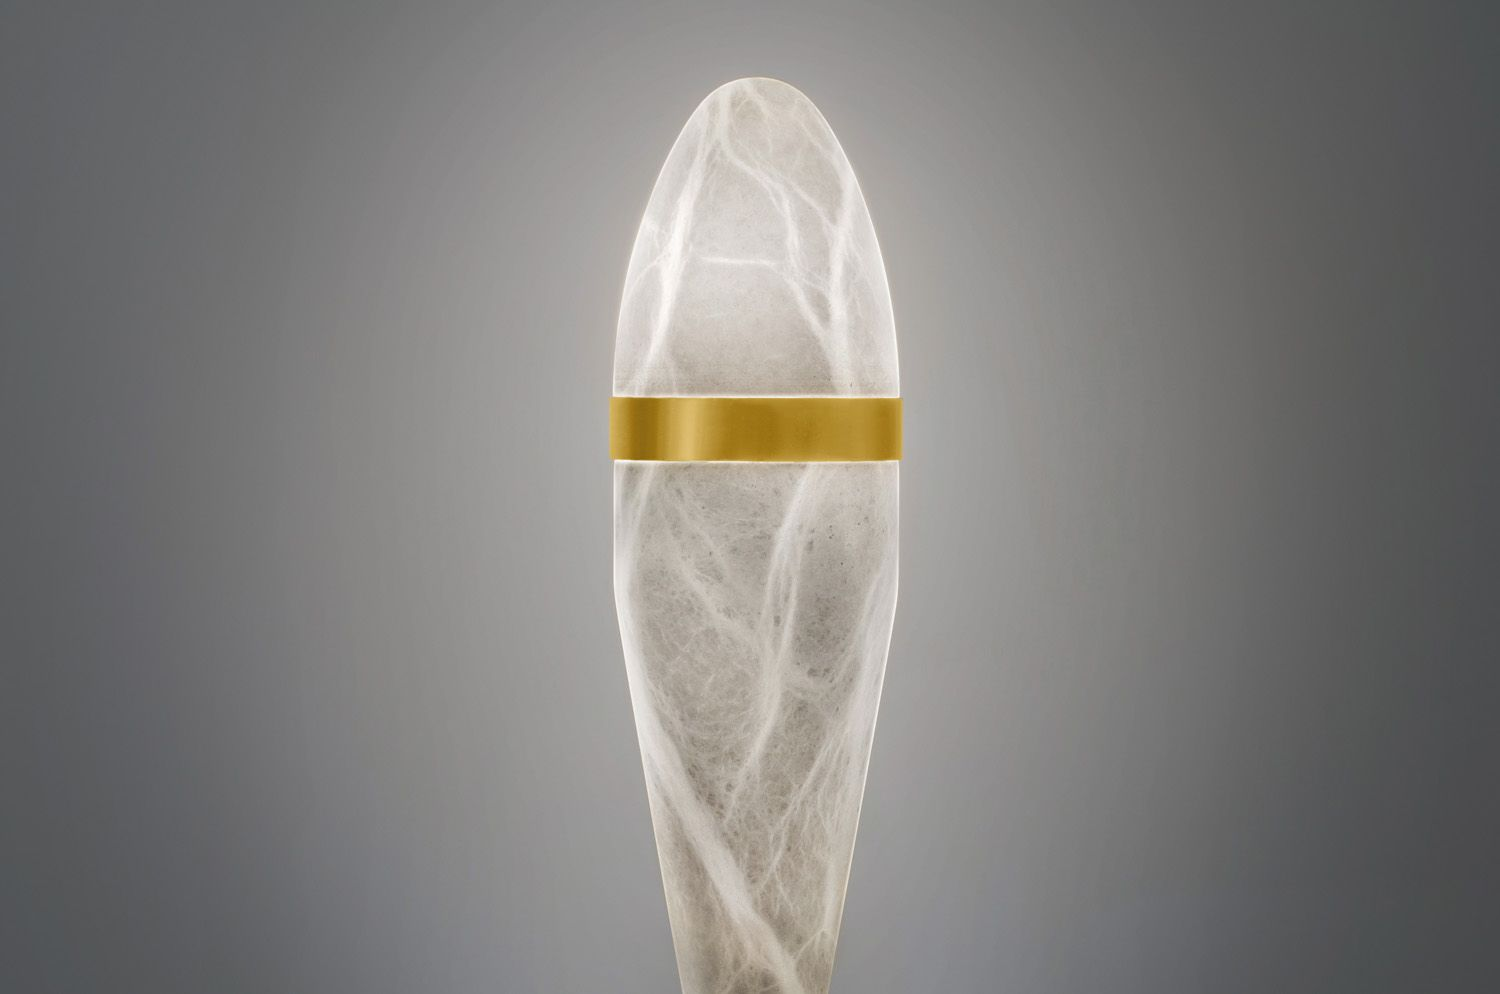 Sculpture Table Lamp Made In Alabaster Stone And Brass Plated In